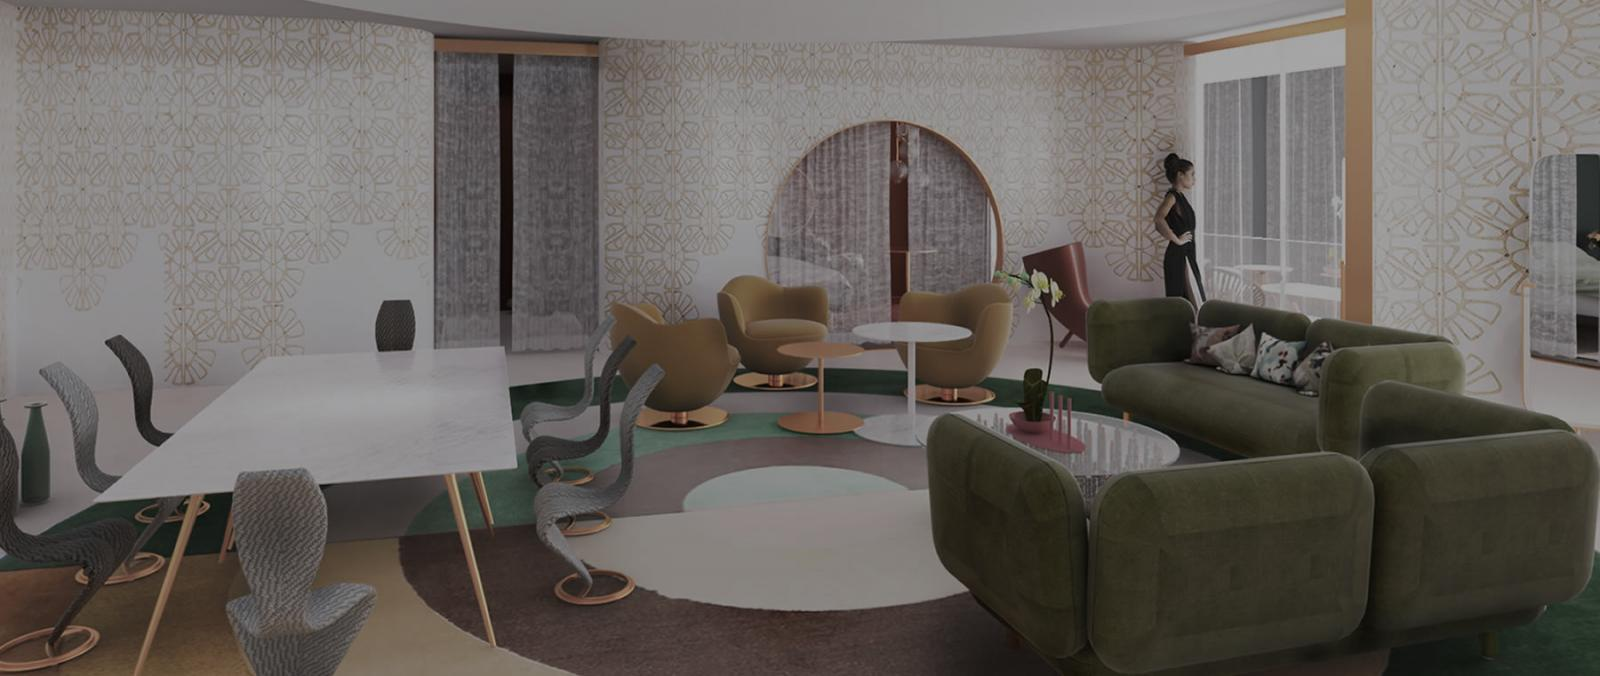 Contemporary Interior Design Master's Course